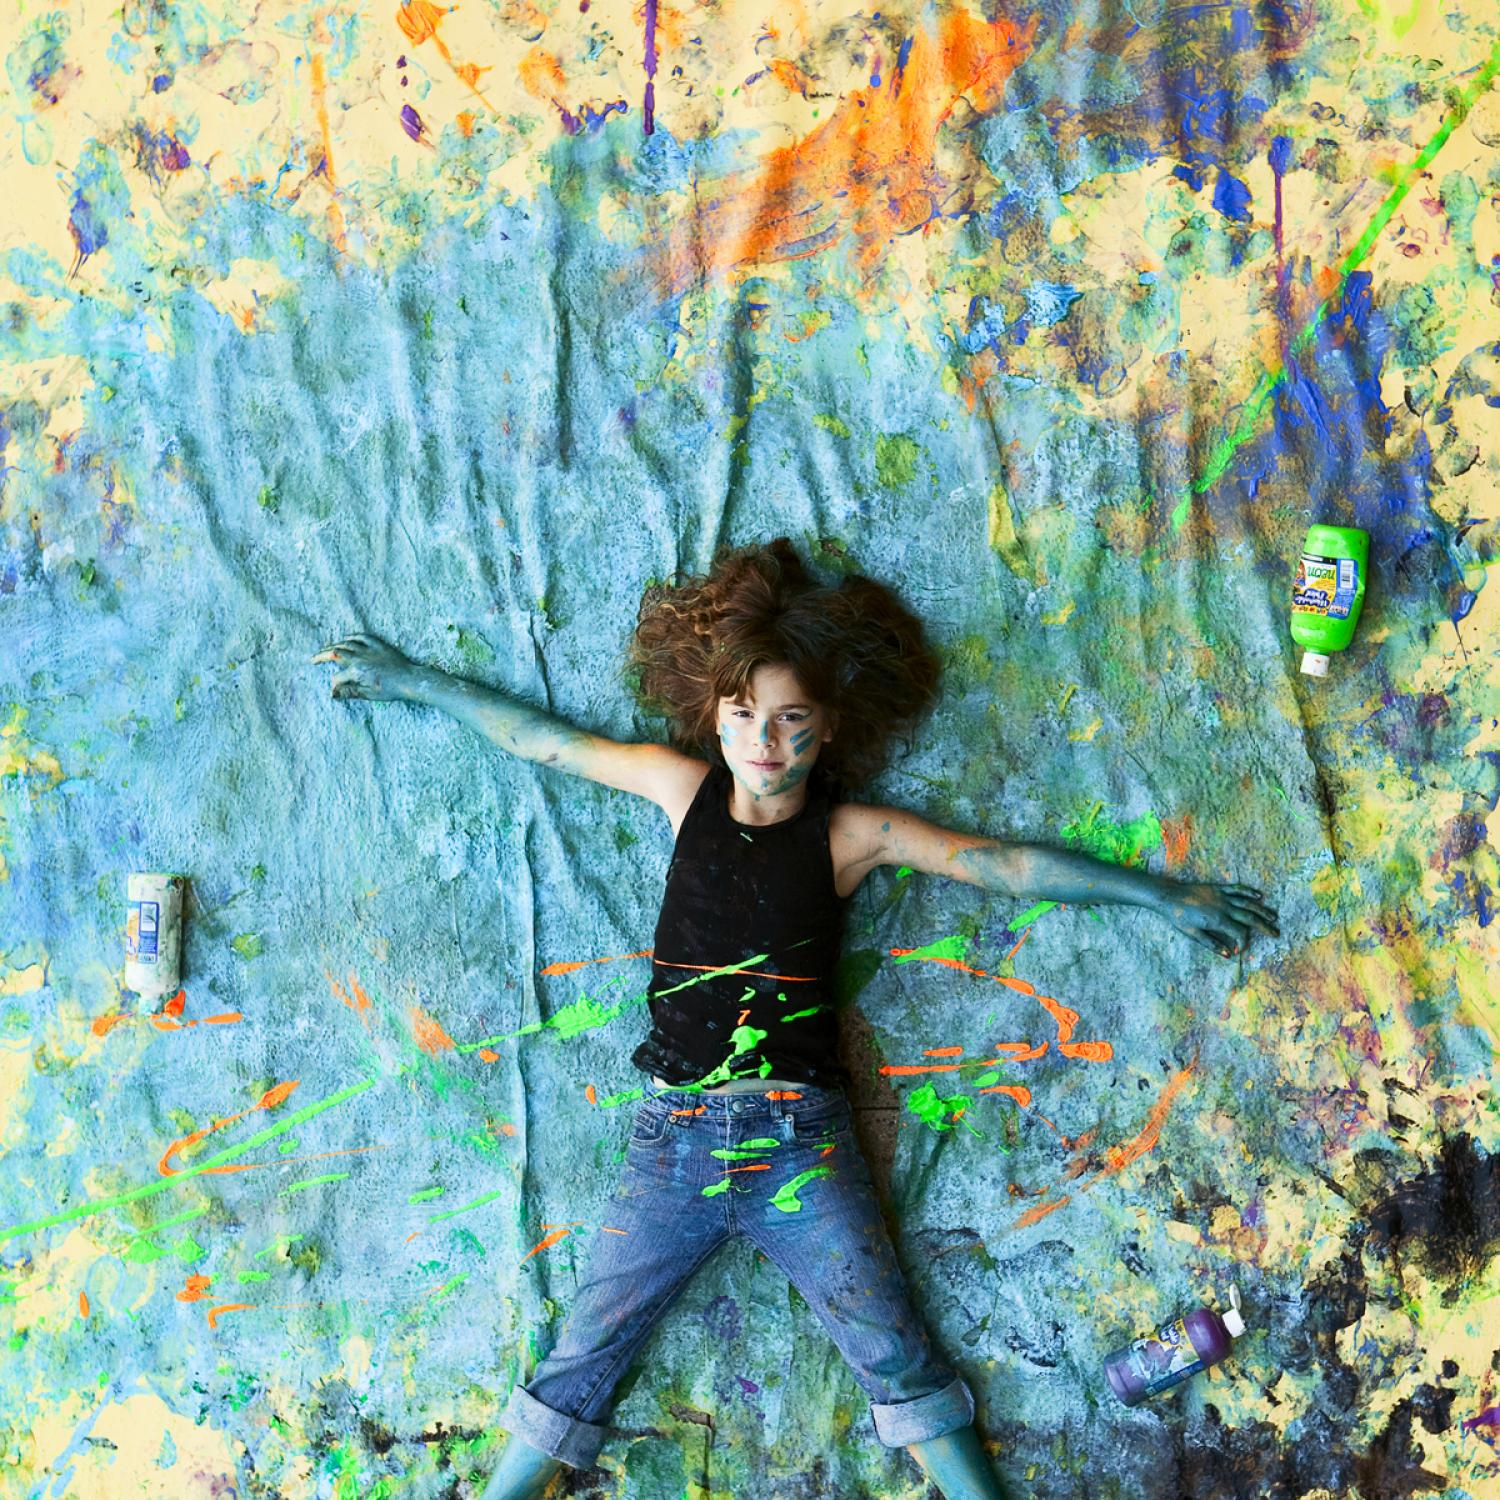 Experiential learning. Photo , shot from above, shows little girl lying on a paint splattered canvas. She is covered in paint and is loking up towards camera, smiling.